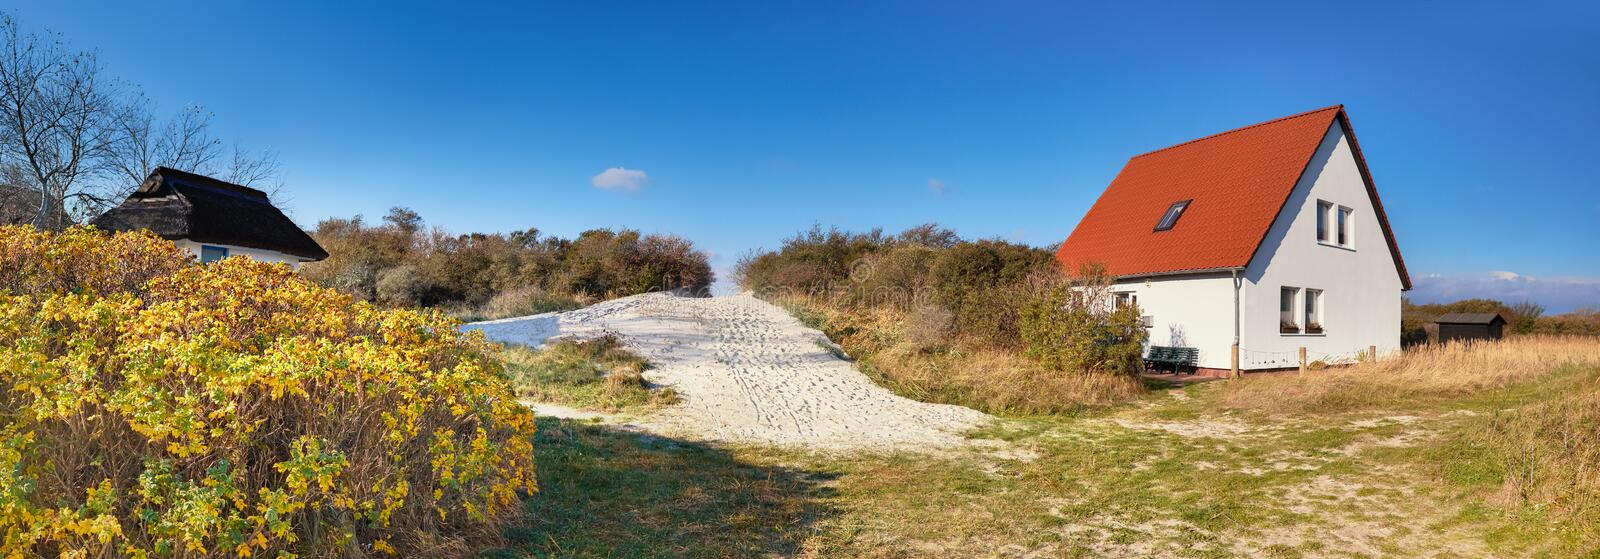 Traditional houses and entrance to the beach, Vitte village on island of Hiddensee, off the Baltic coast of Northern German. Y, panoramic image royalty free stock image